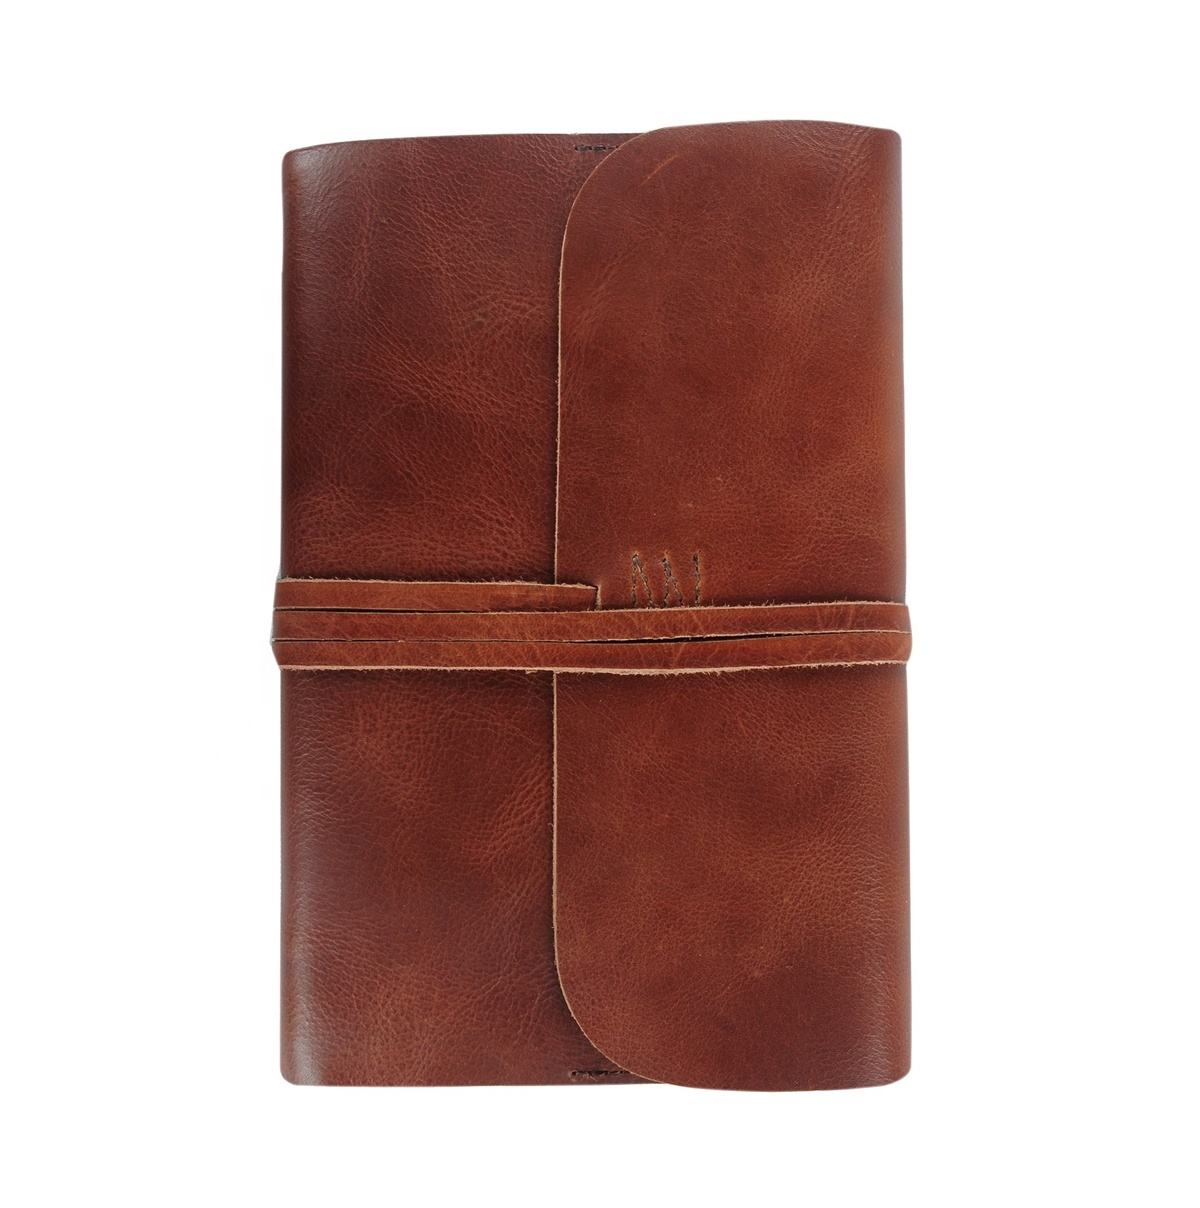 A5 Leather Journal Writer Notebook Diary Customized Colors